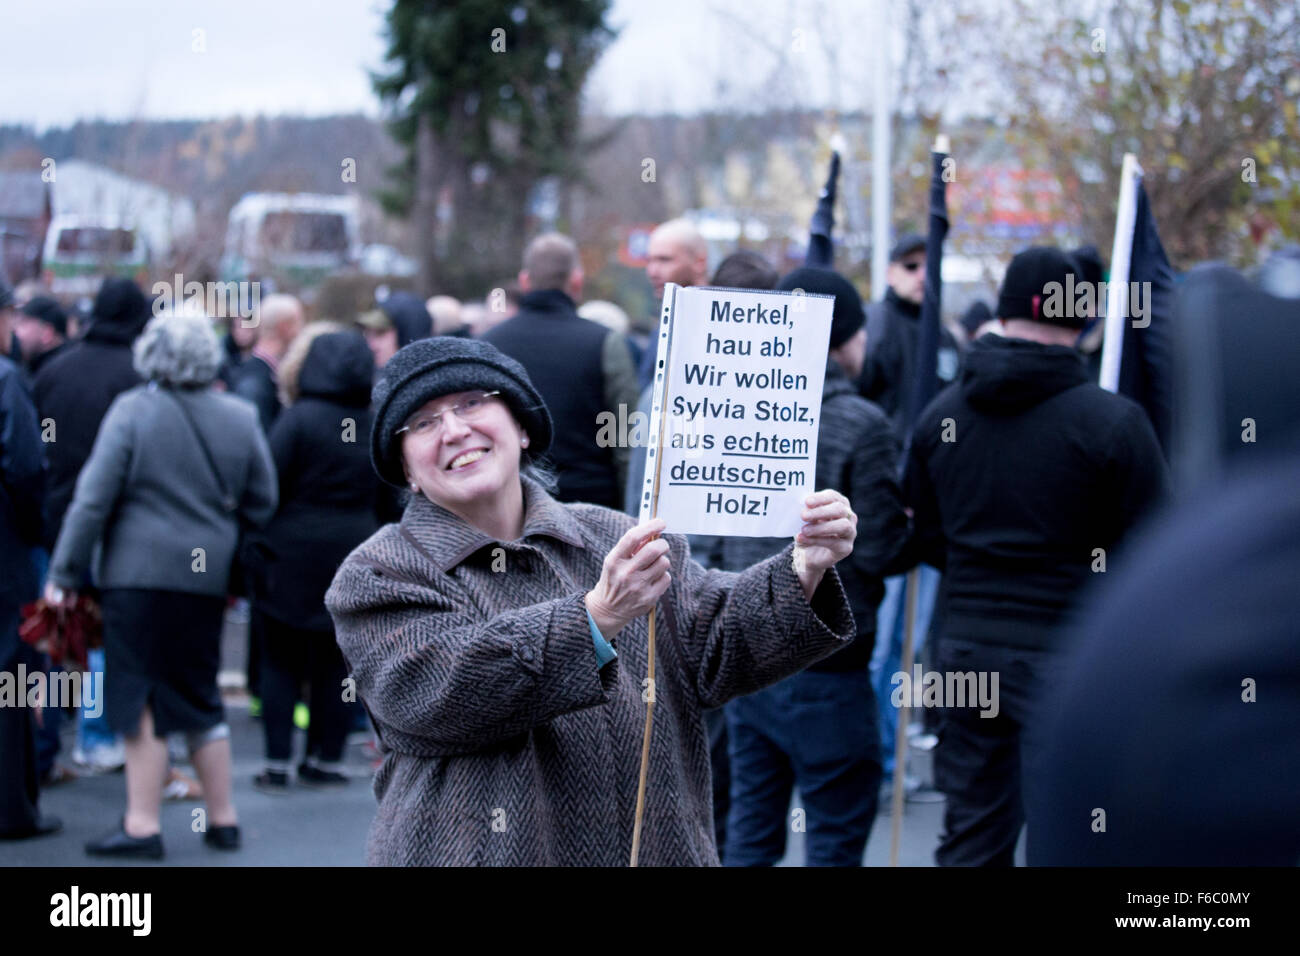 """An old lady that first showed up at the antifacist counter-demonstration demands """"SylviaStolz"""" - holocaust denier Stock Photo"""